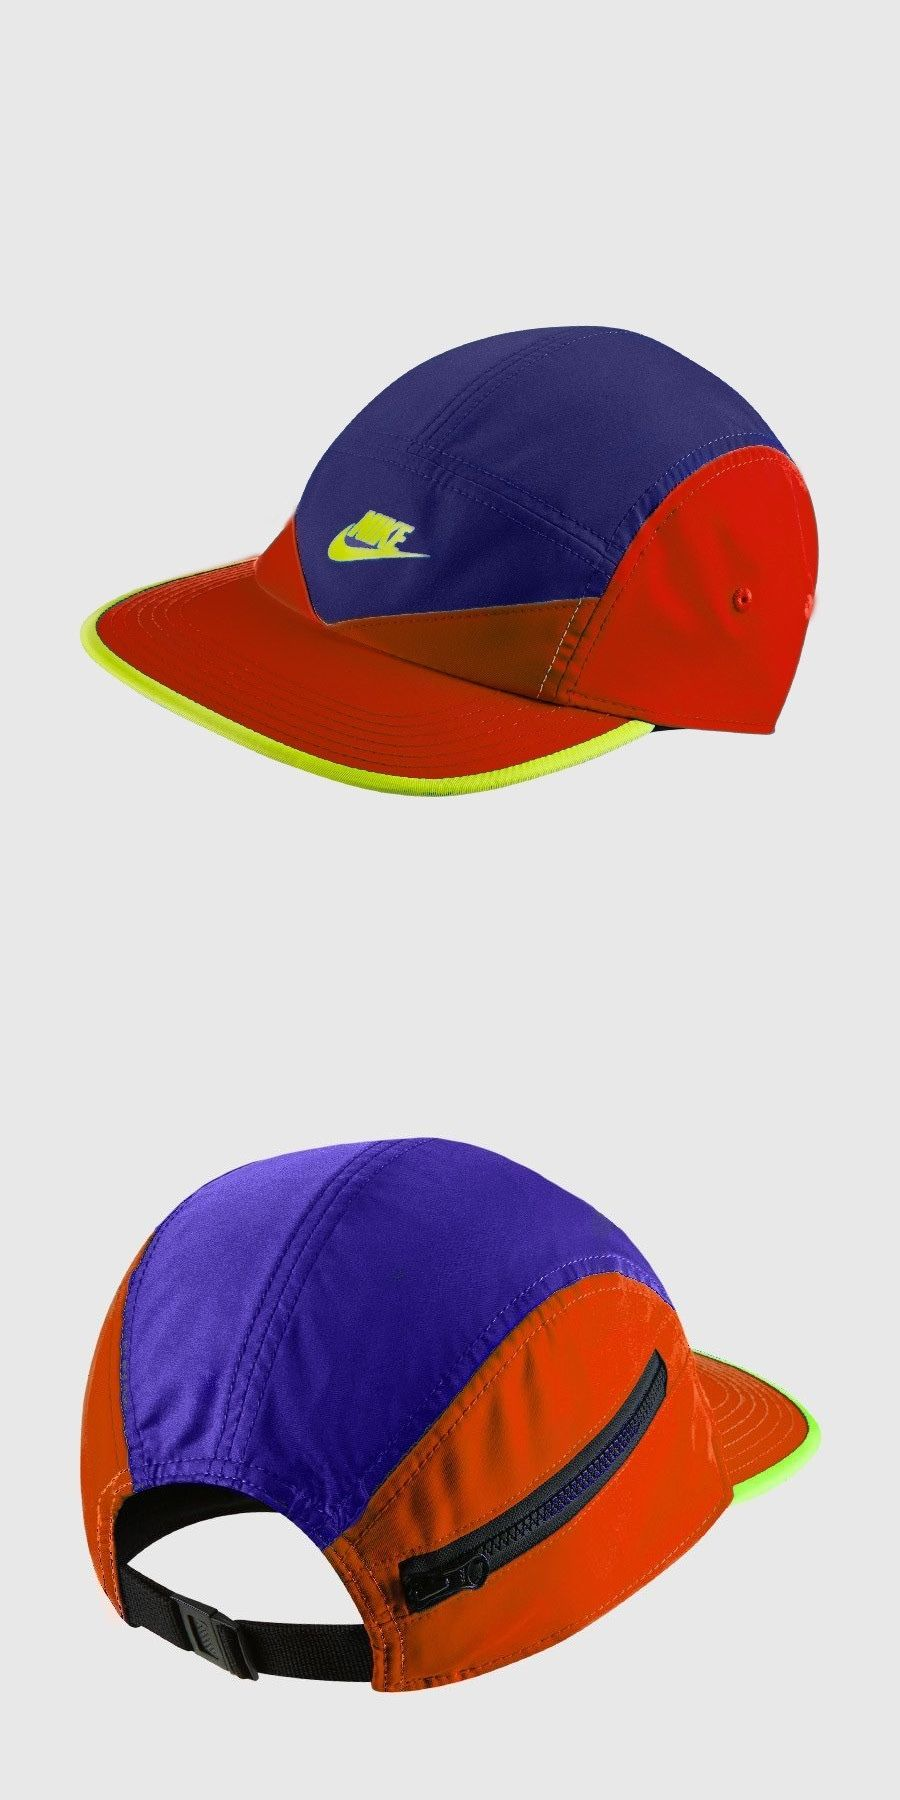 3f1a14ed98f Hats 45230  Nike Zip Aw84 Adjustable Dri-Fit Running Hat Multi-Color Brand  New With Tags -  BUY IT NOW ONLY   35.95 on eBay!